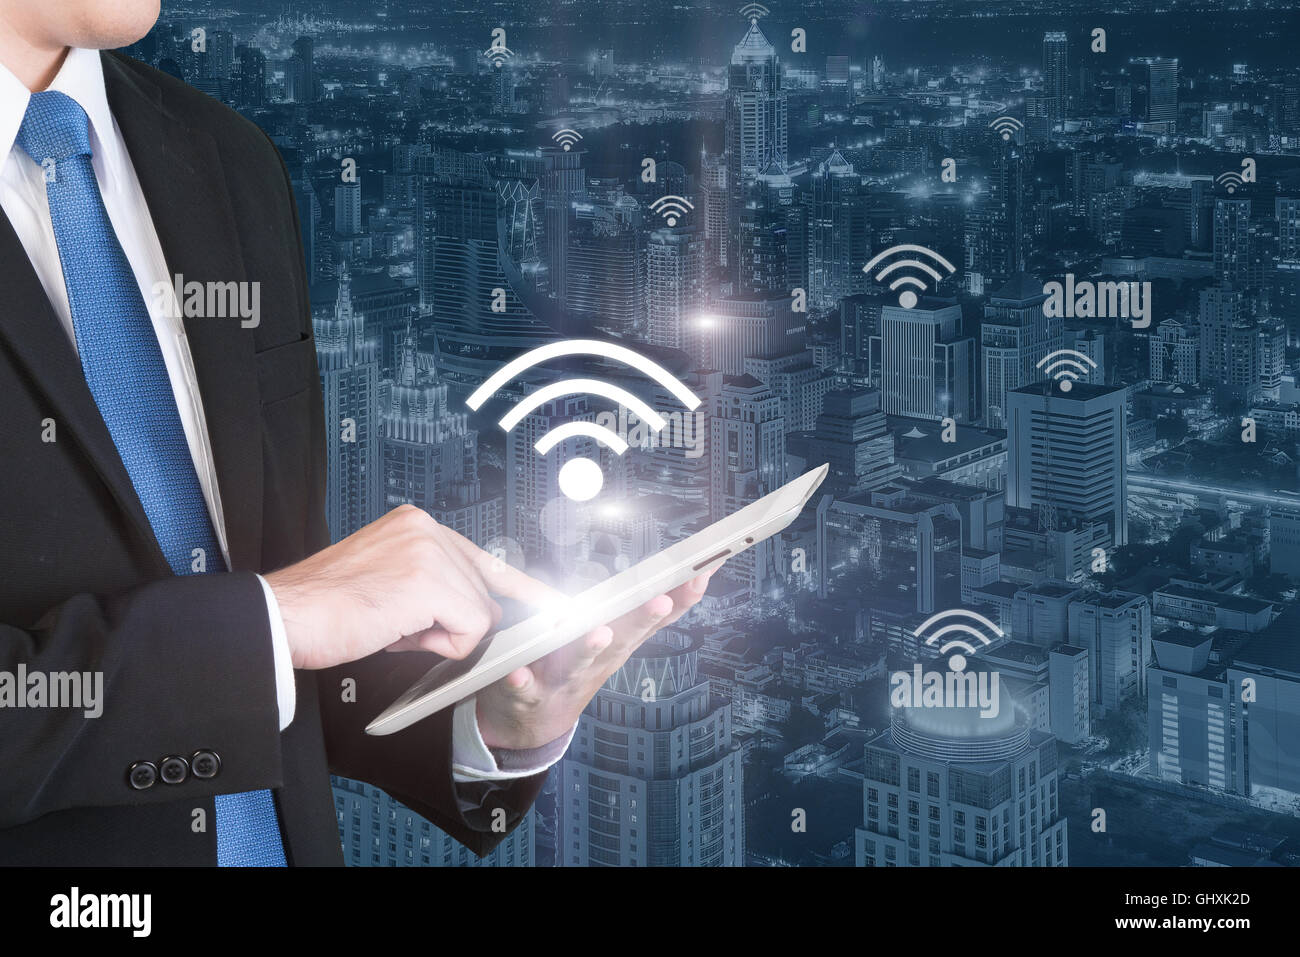 Business technology concept - Business man press digital tablet to connecting wifi or internet in business center - Stock Image